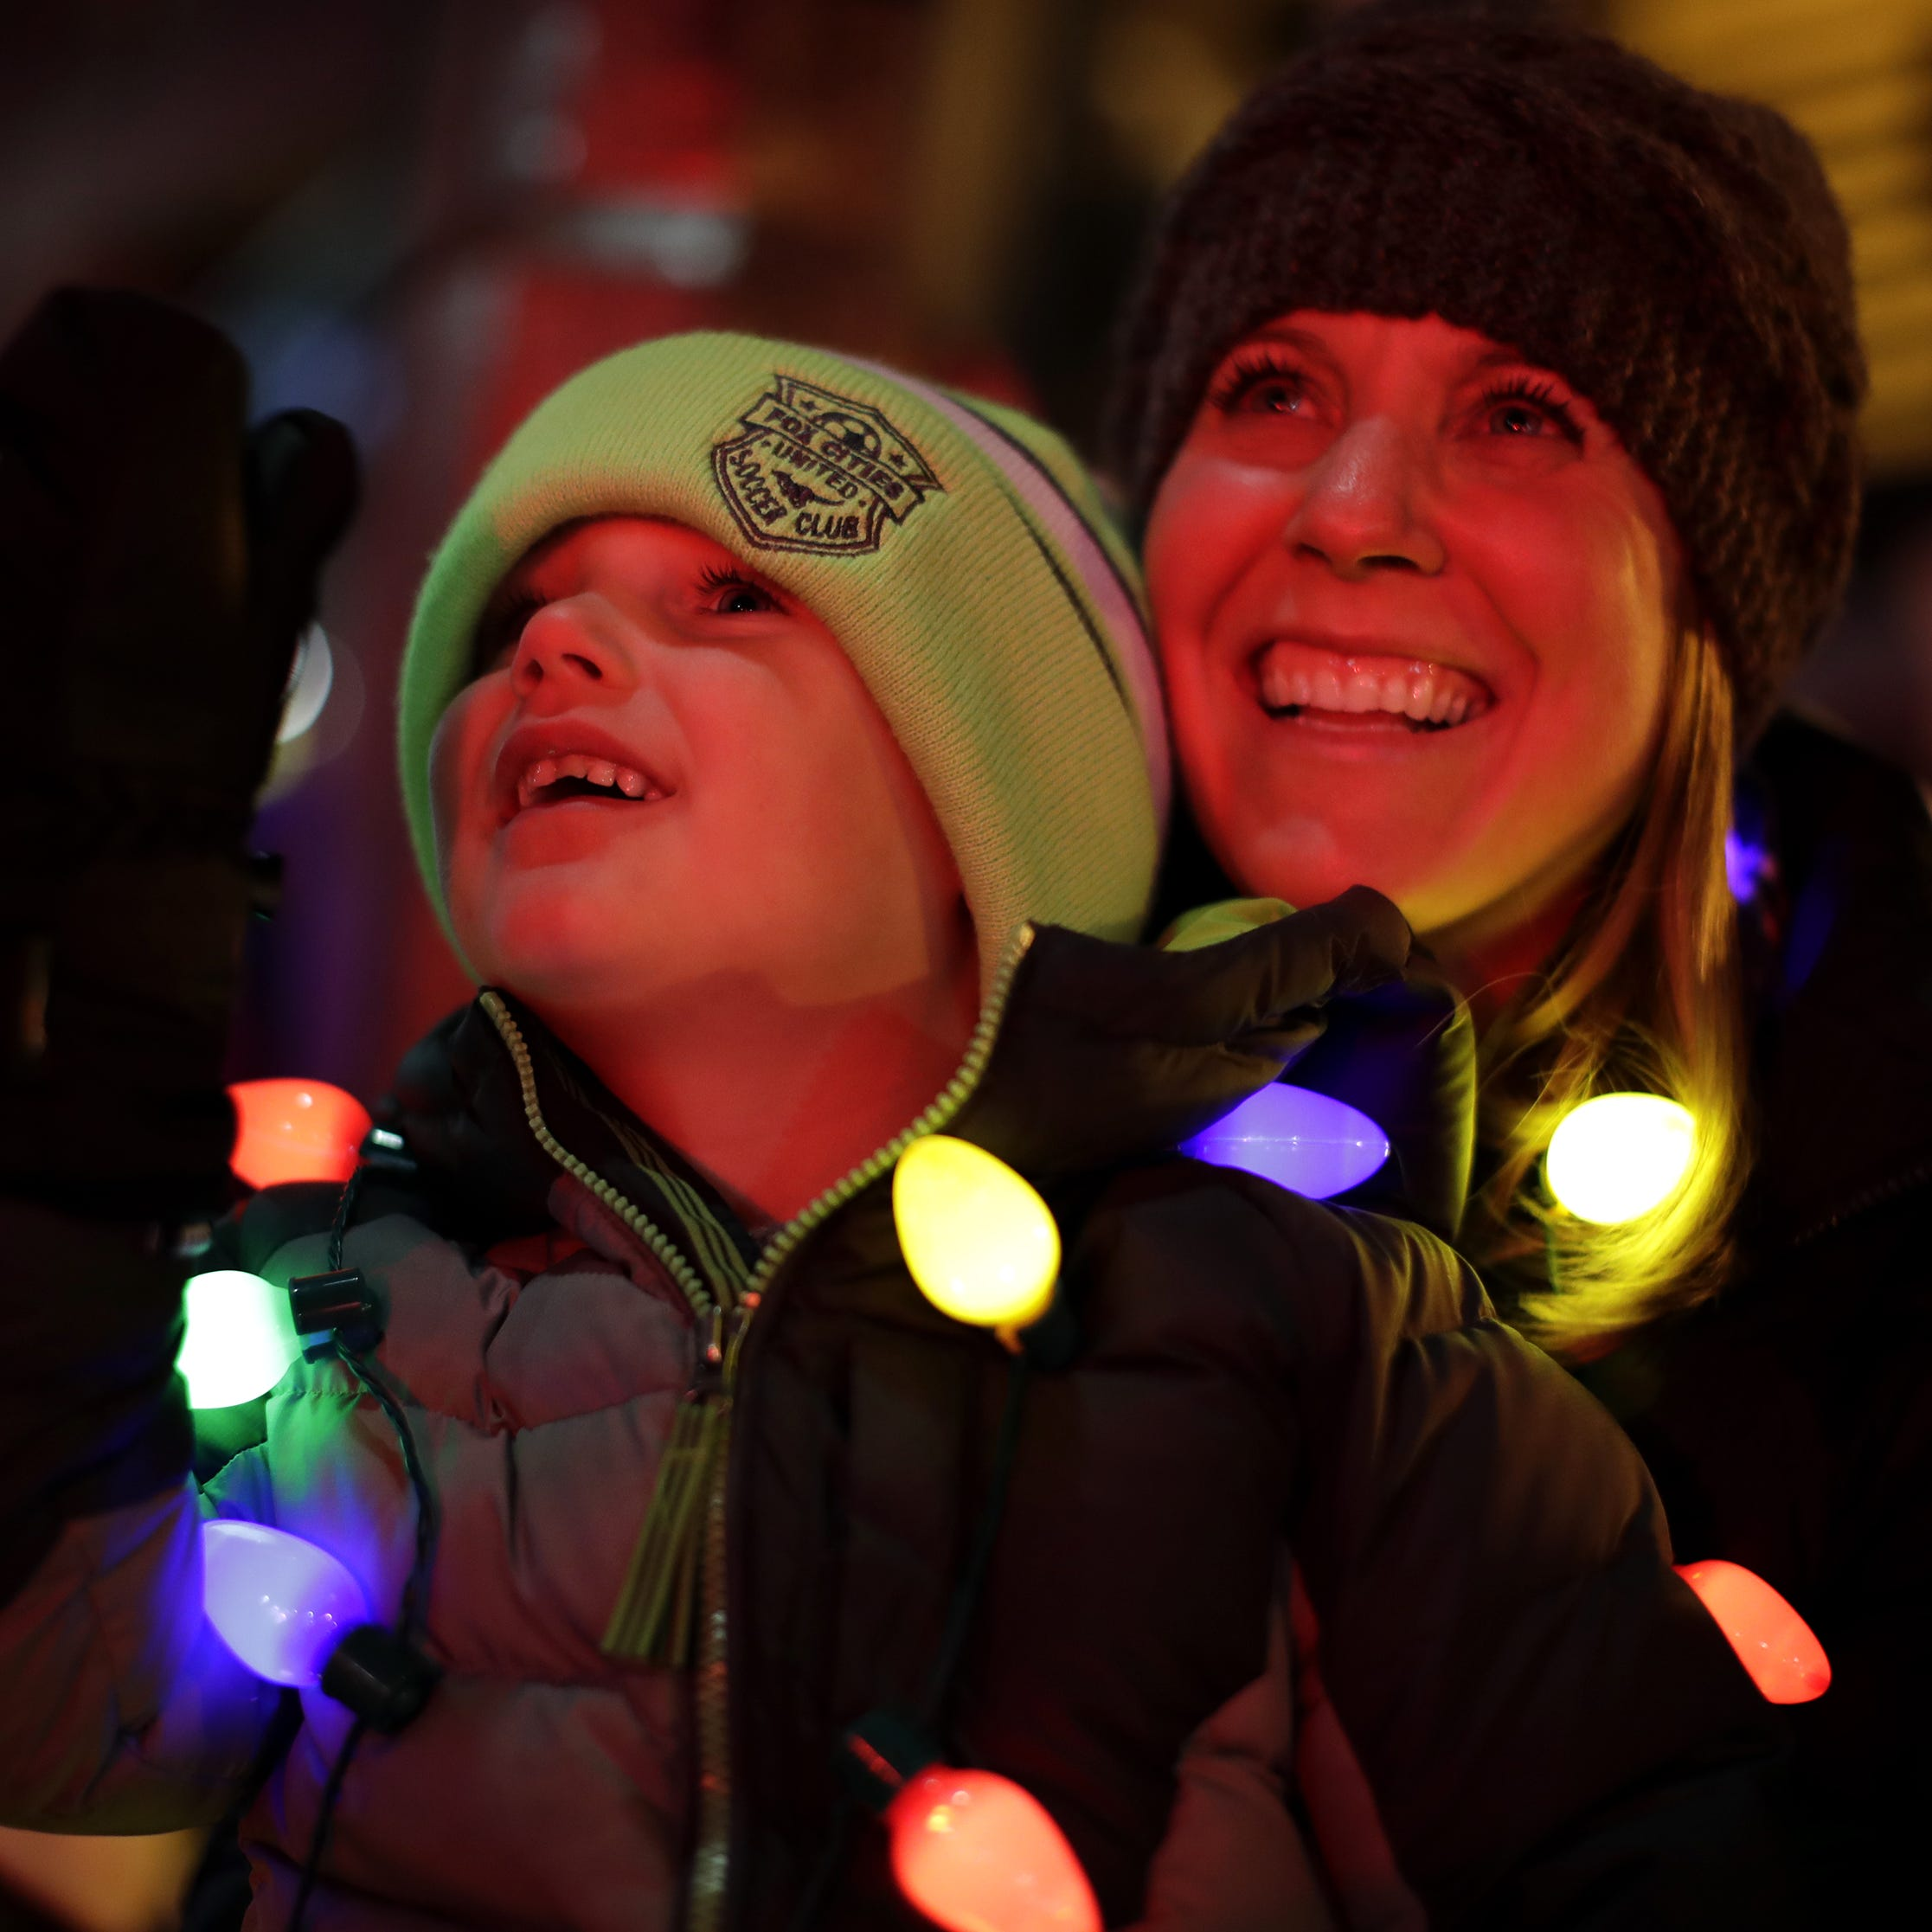 Downtown Appleton Christmas Parade: What you need to know before you go